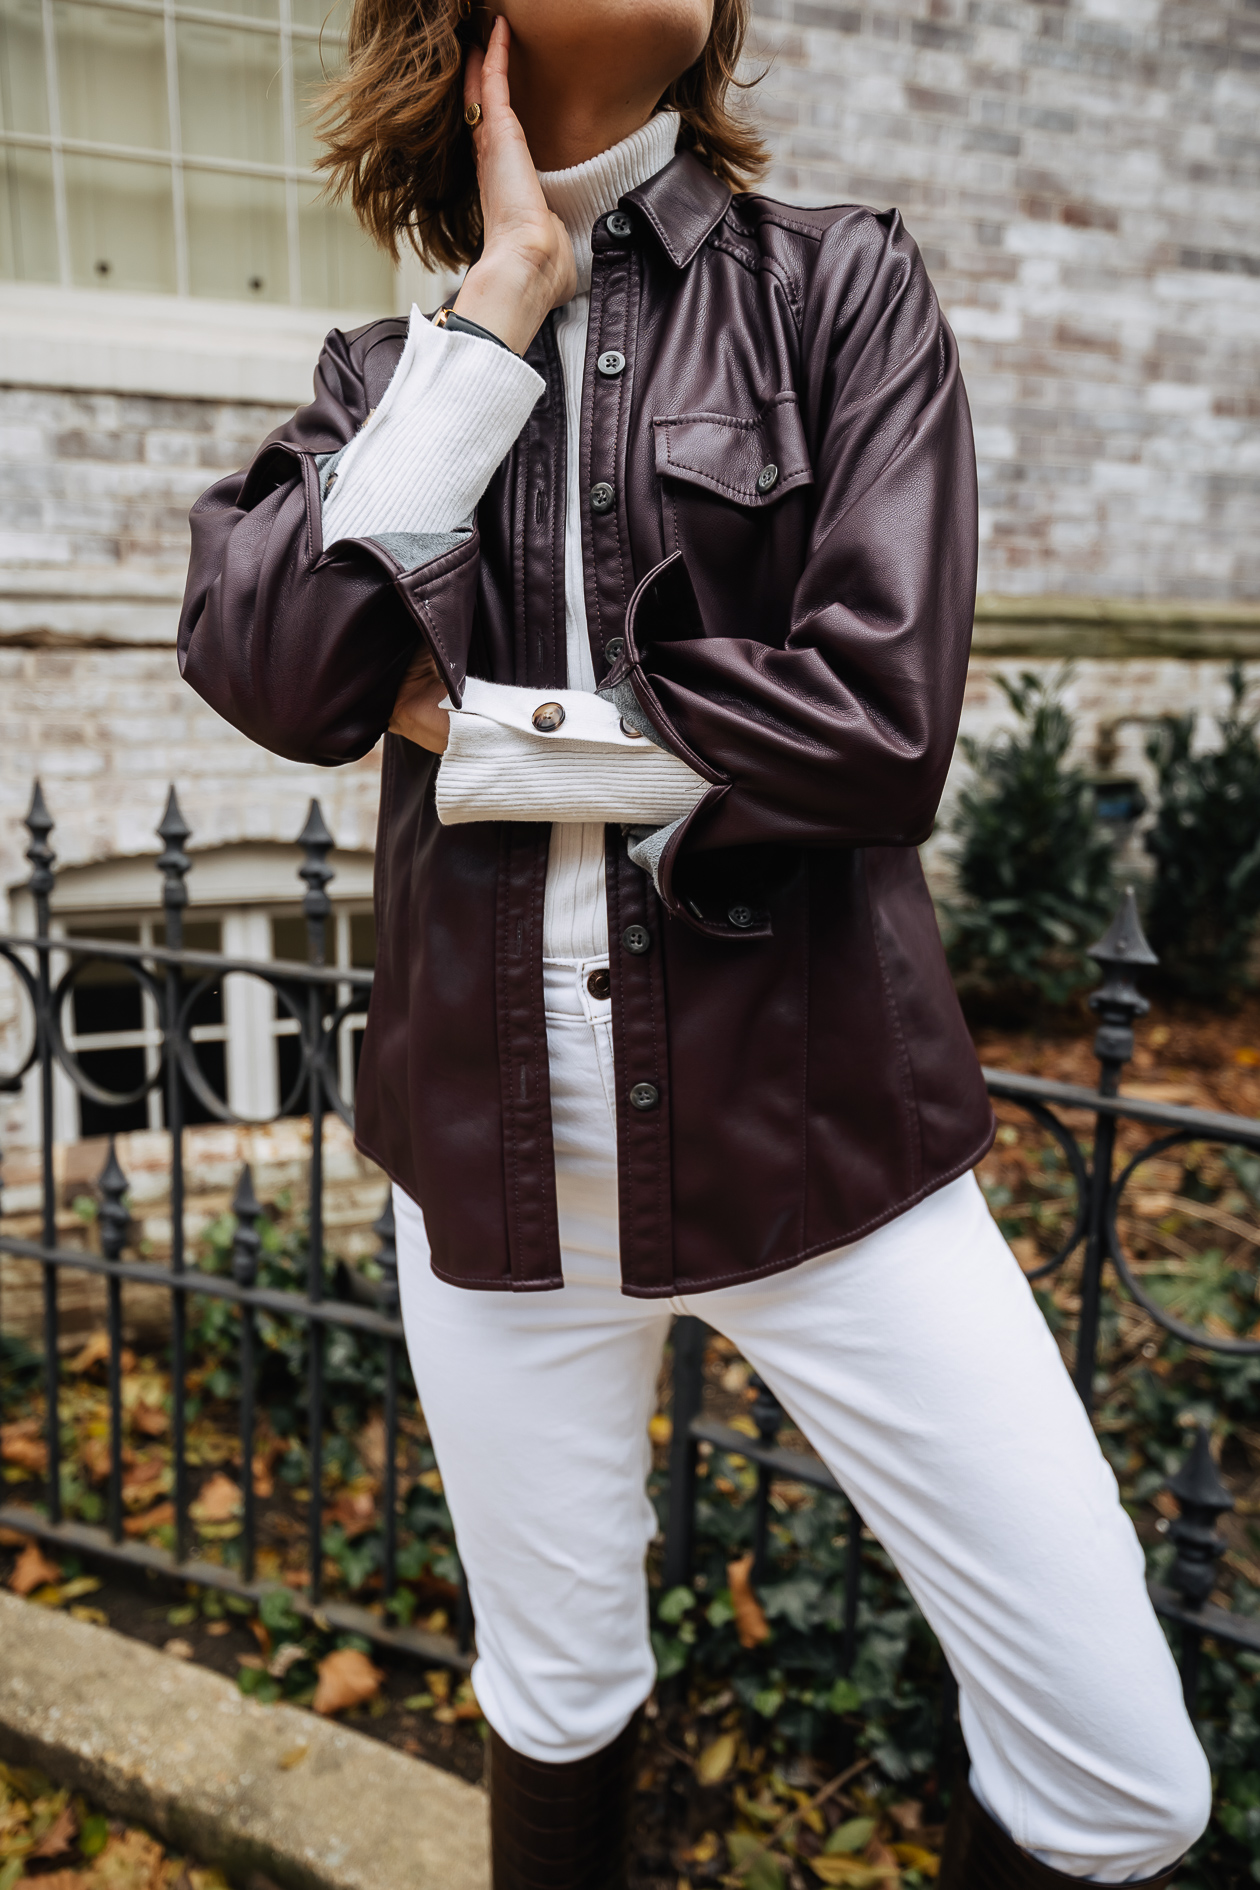 winter white outfit with leather shacket